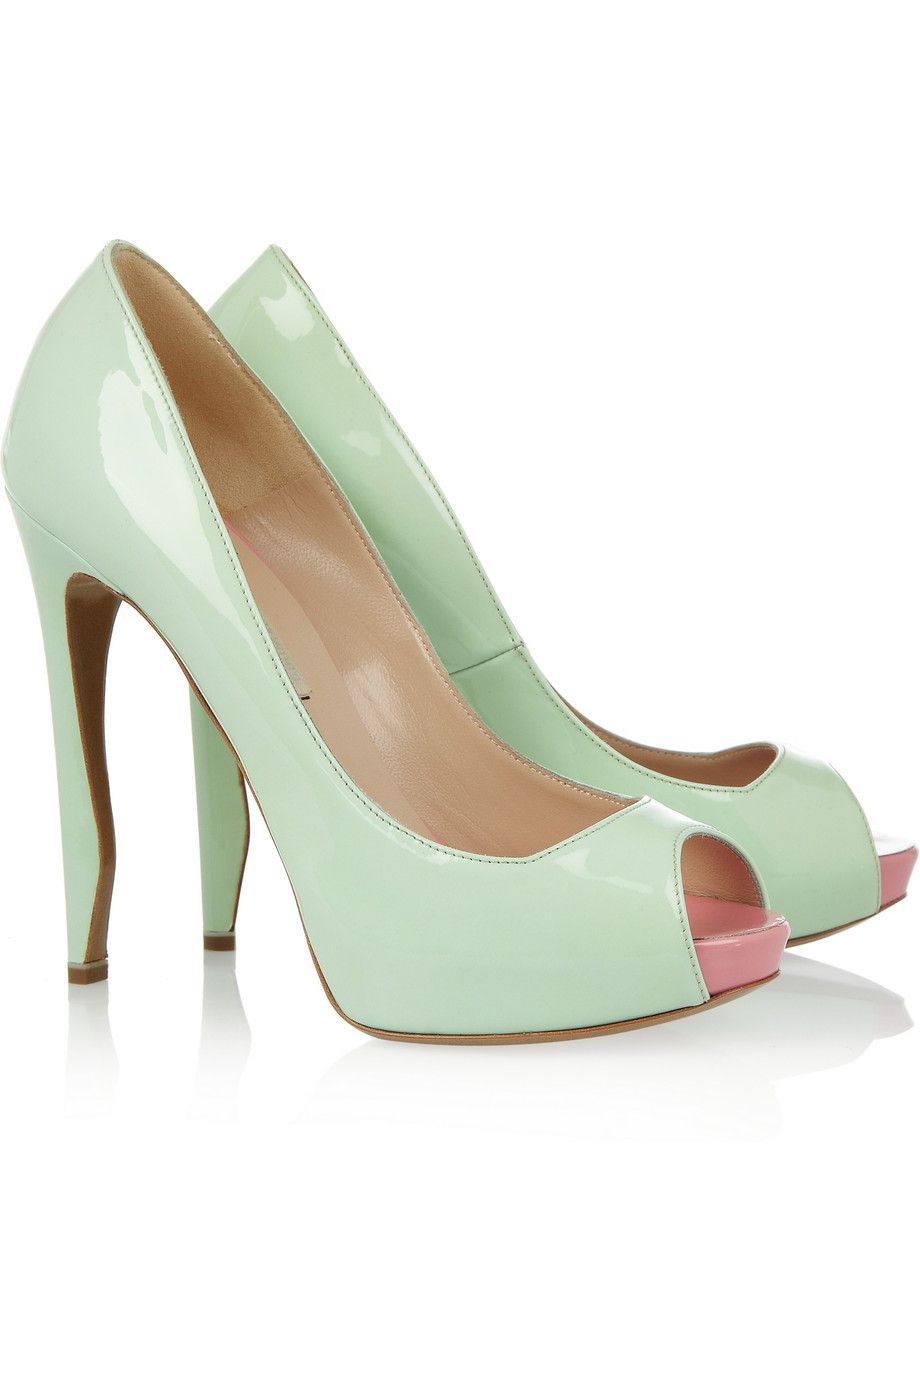 22801956255 Nicholas Kirkwood Patent-leather pumps - 59% Off Now at THE OUTNET ...